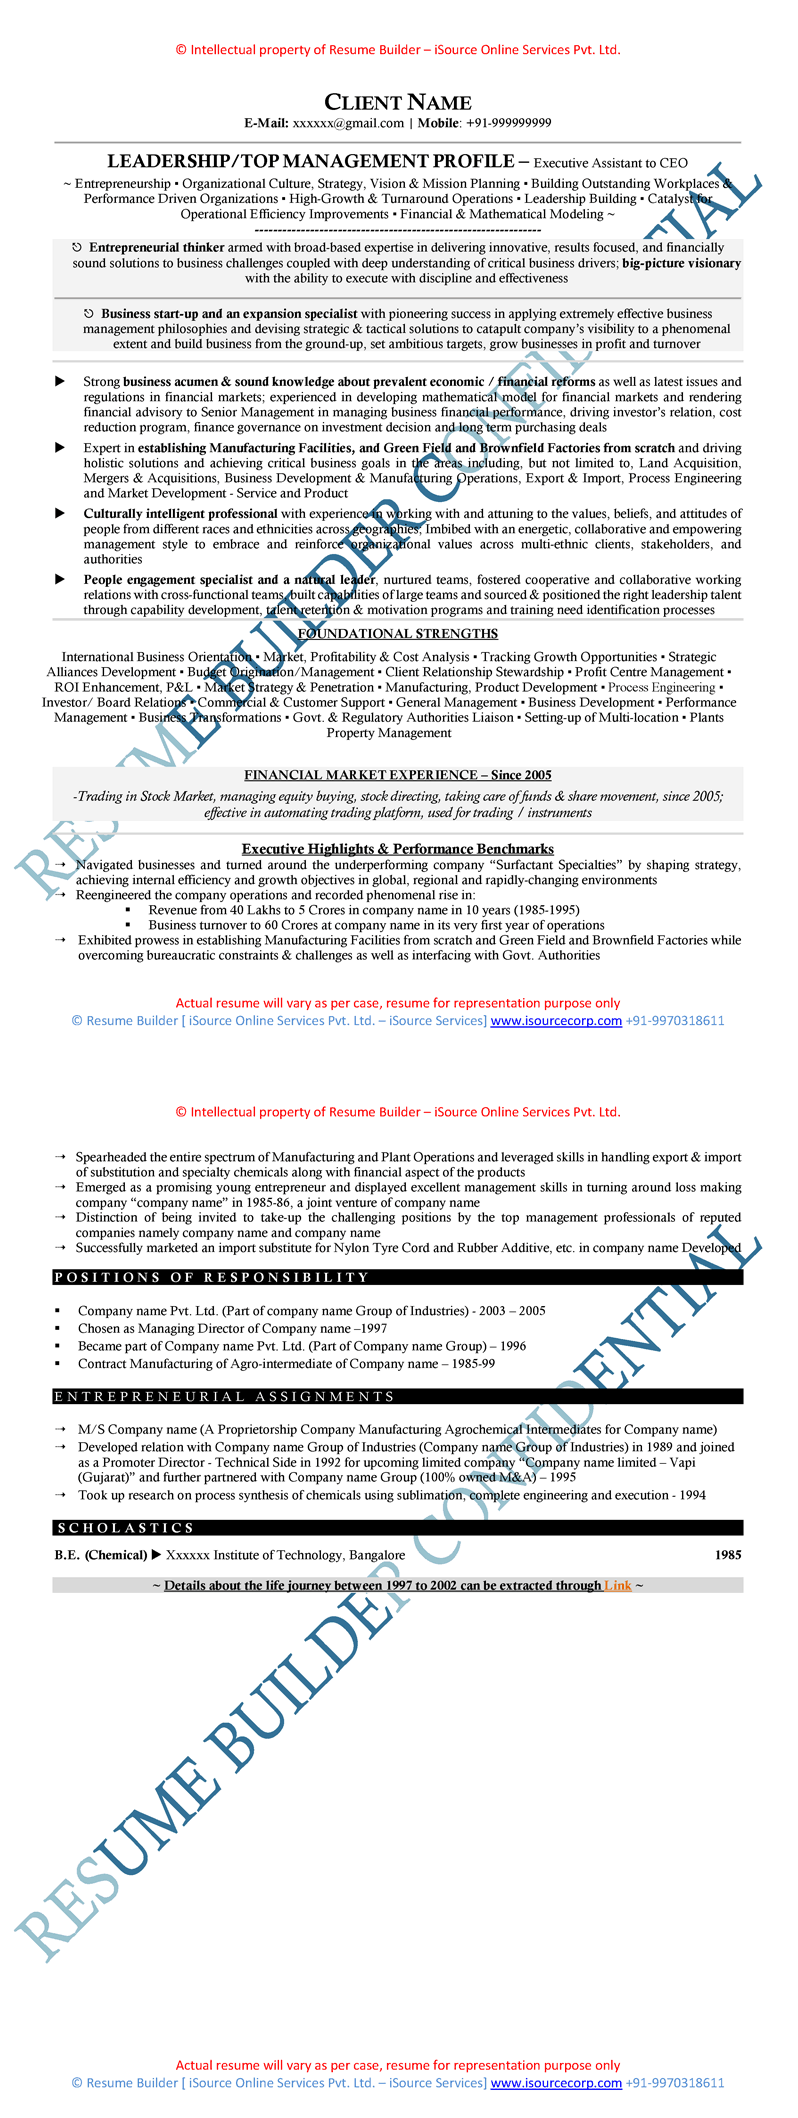 resume samples cv template cv sample sample of senior level resume